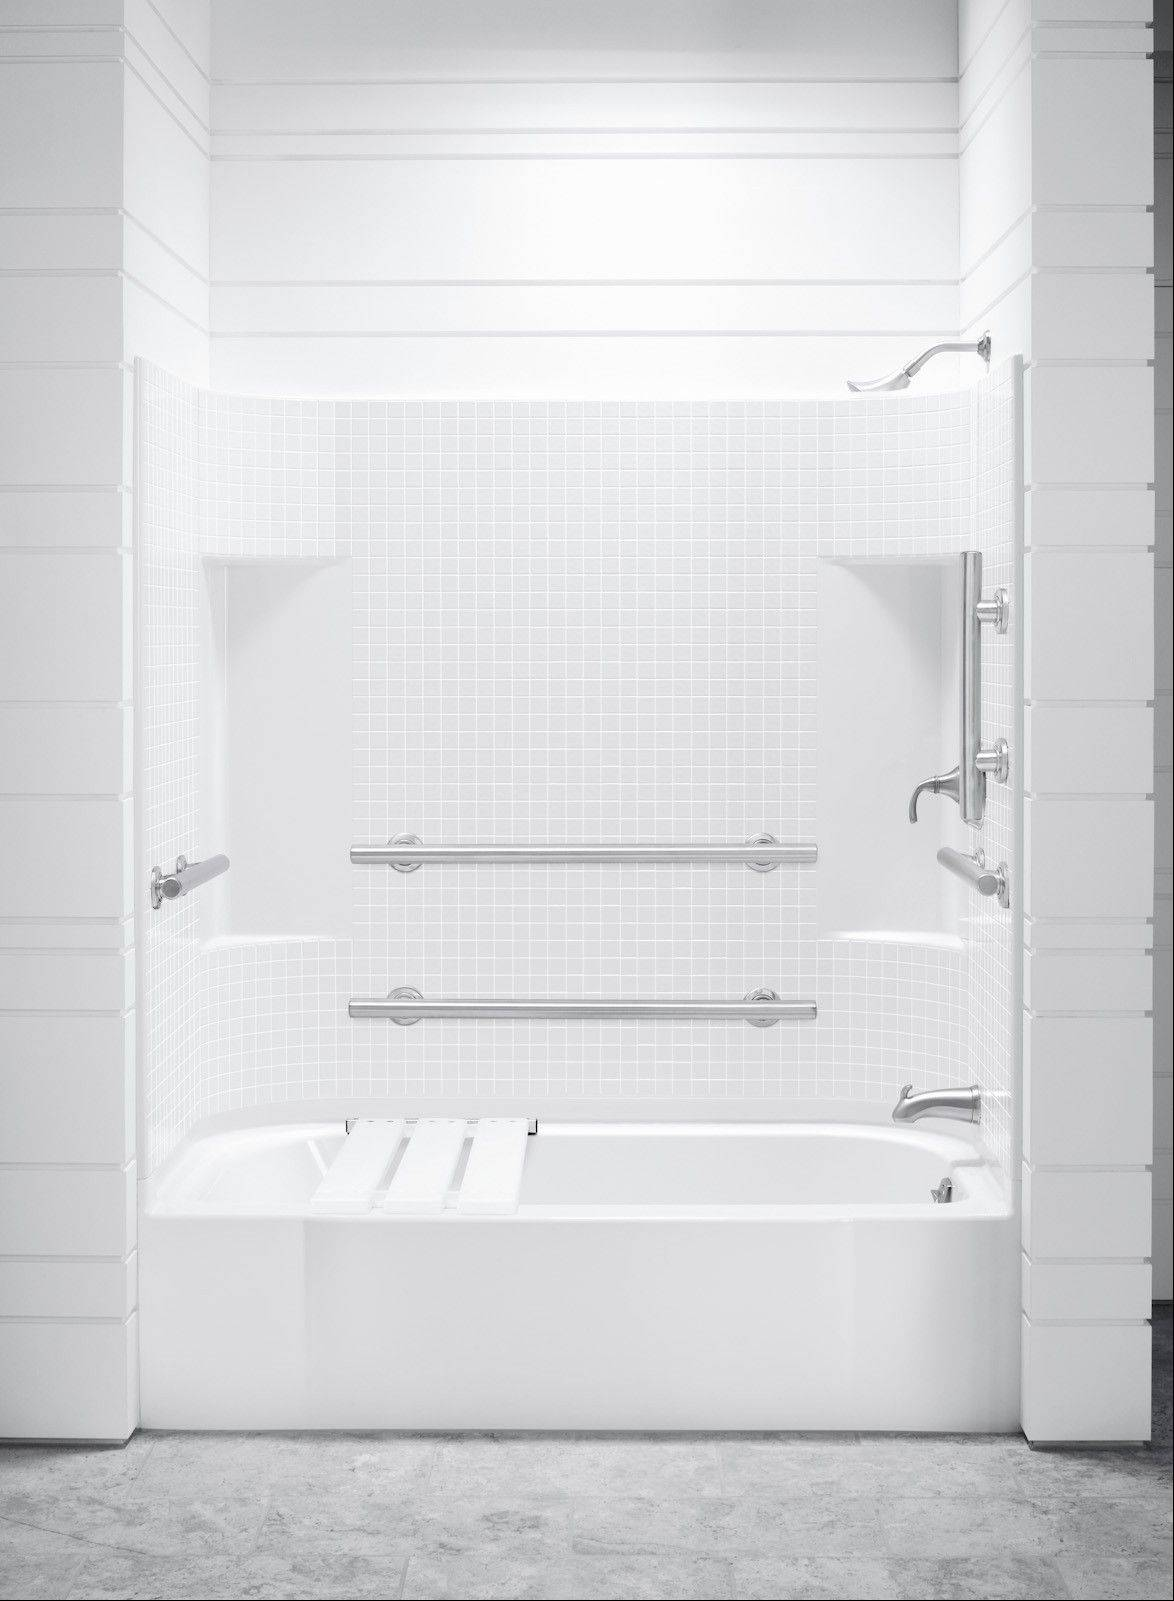 """Multi piece"" tub and shower units work well for most remodeling jobs."